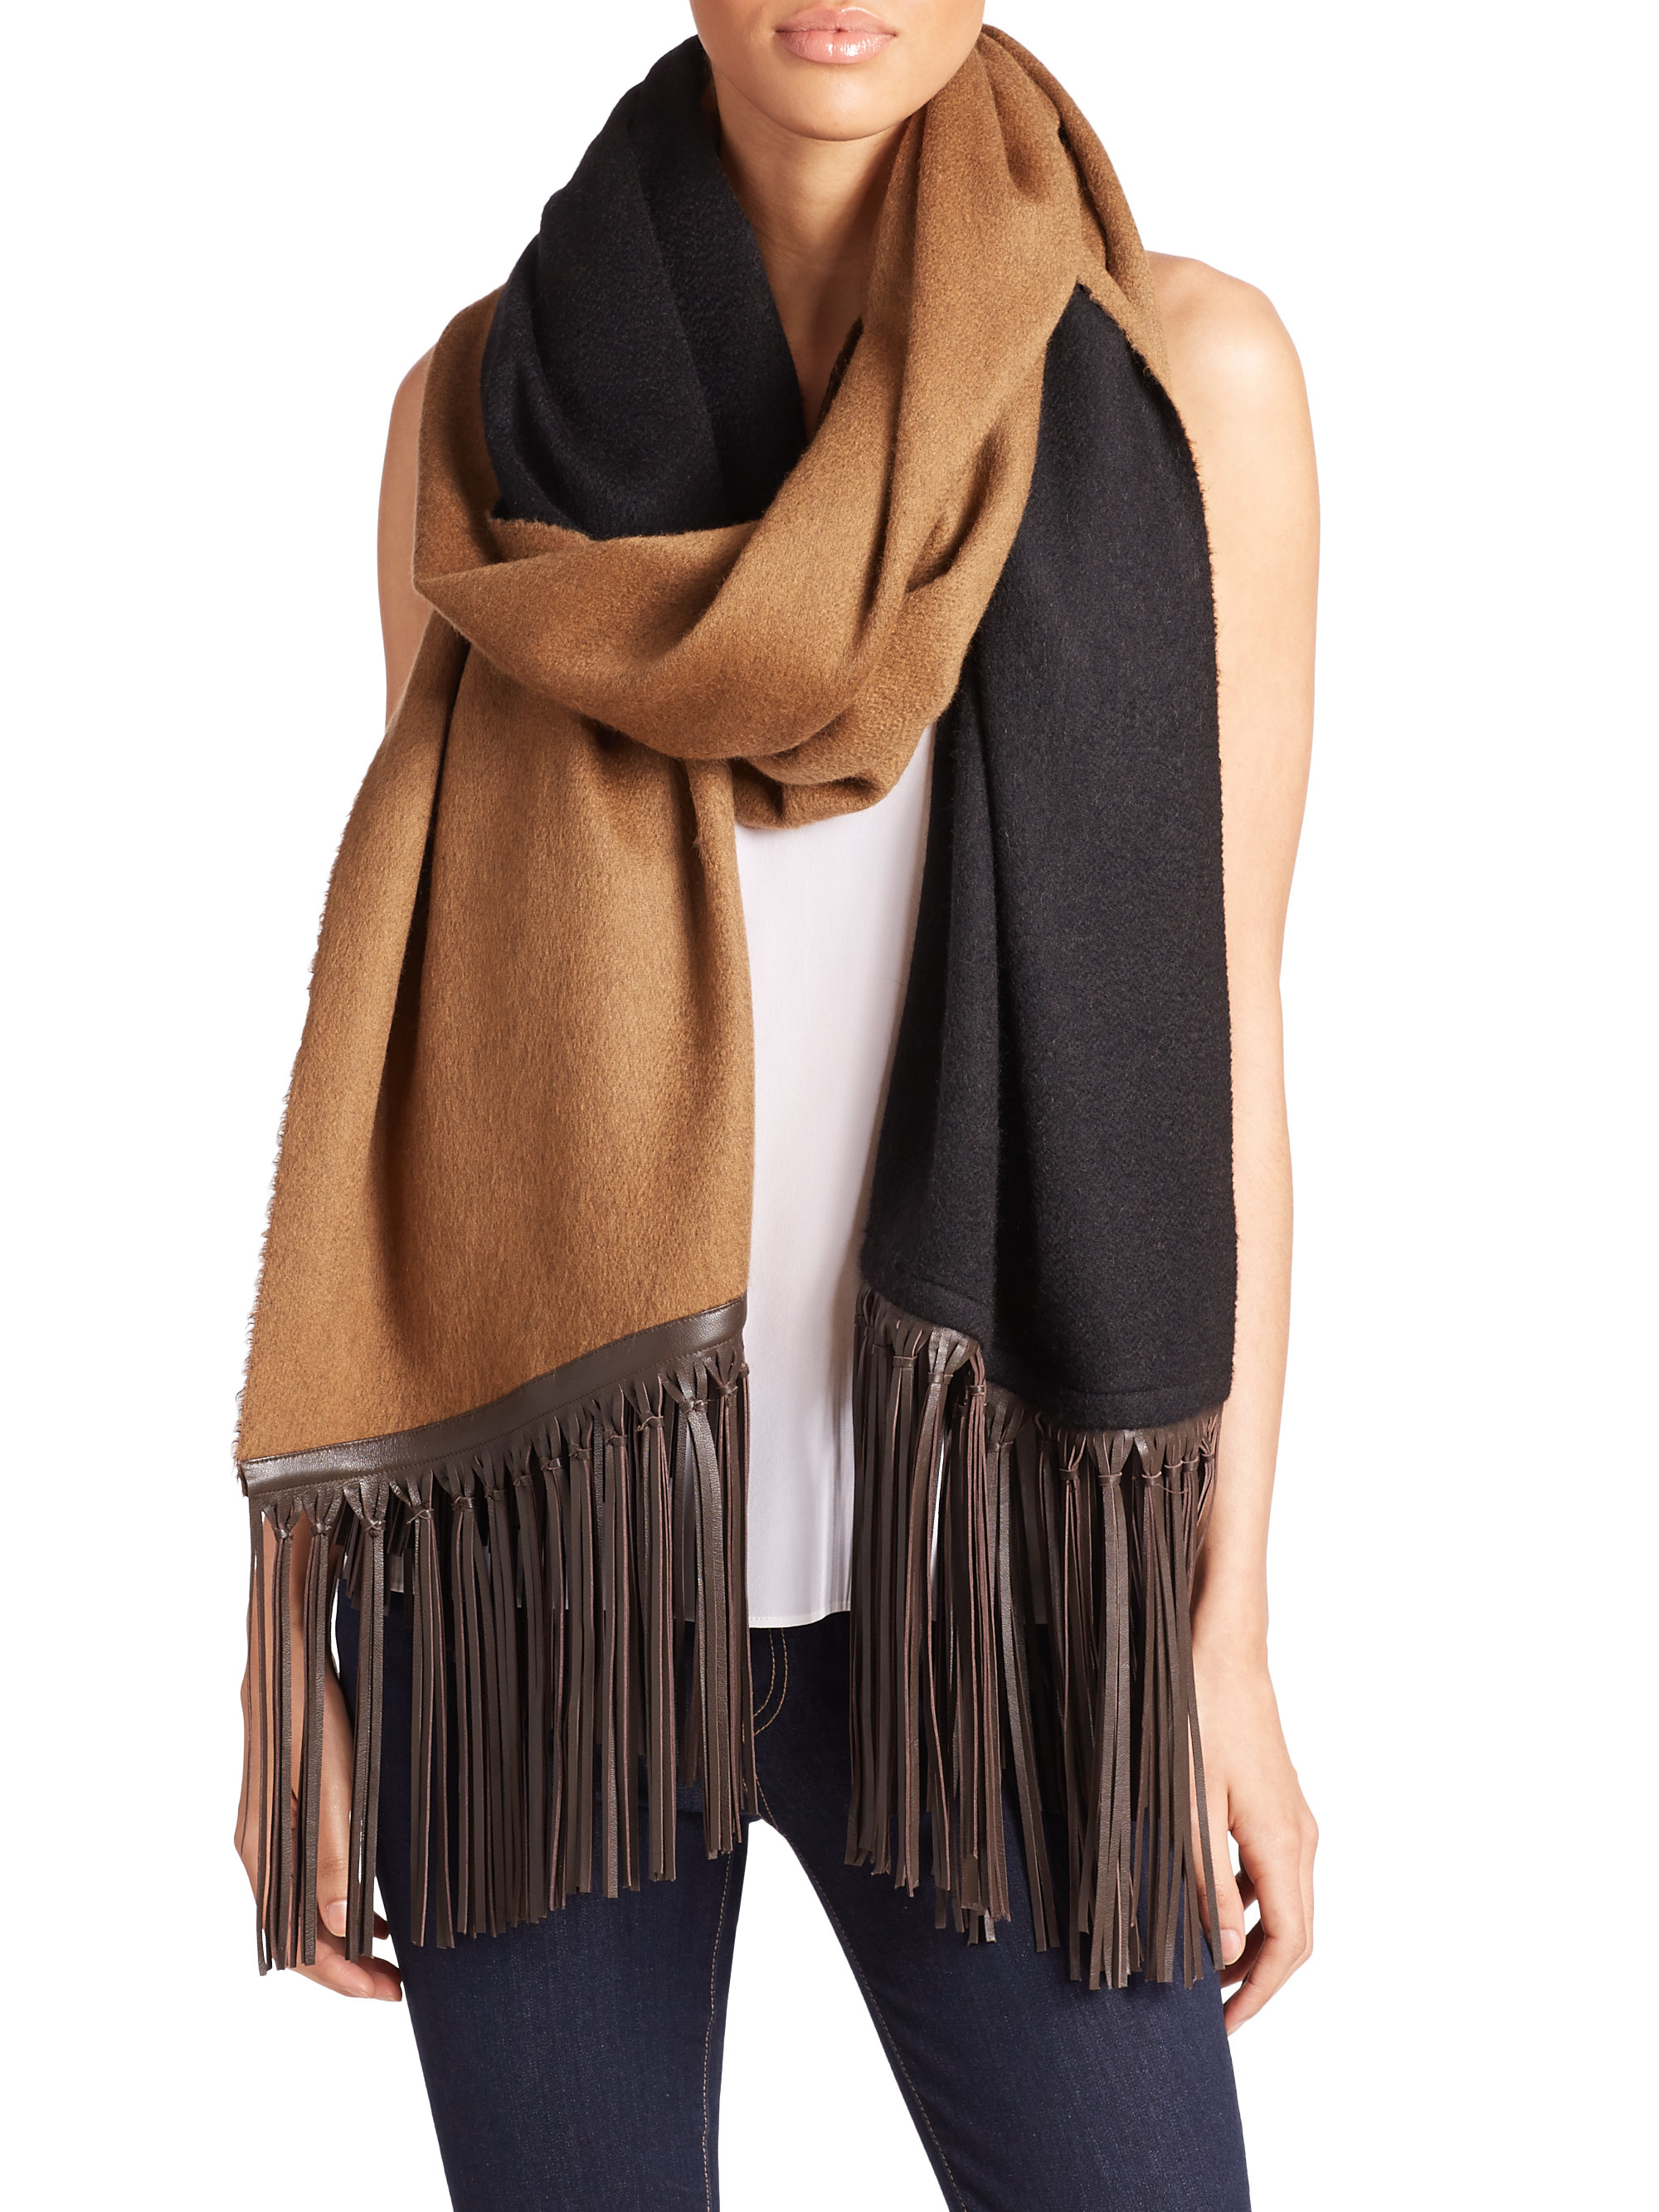 Lyst - Ferragamo Leather-Fringe Cashmere Scarf in Black